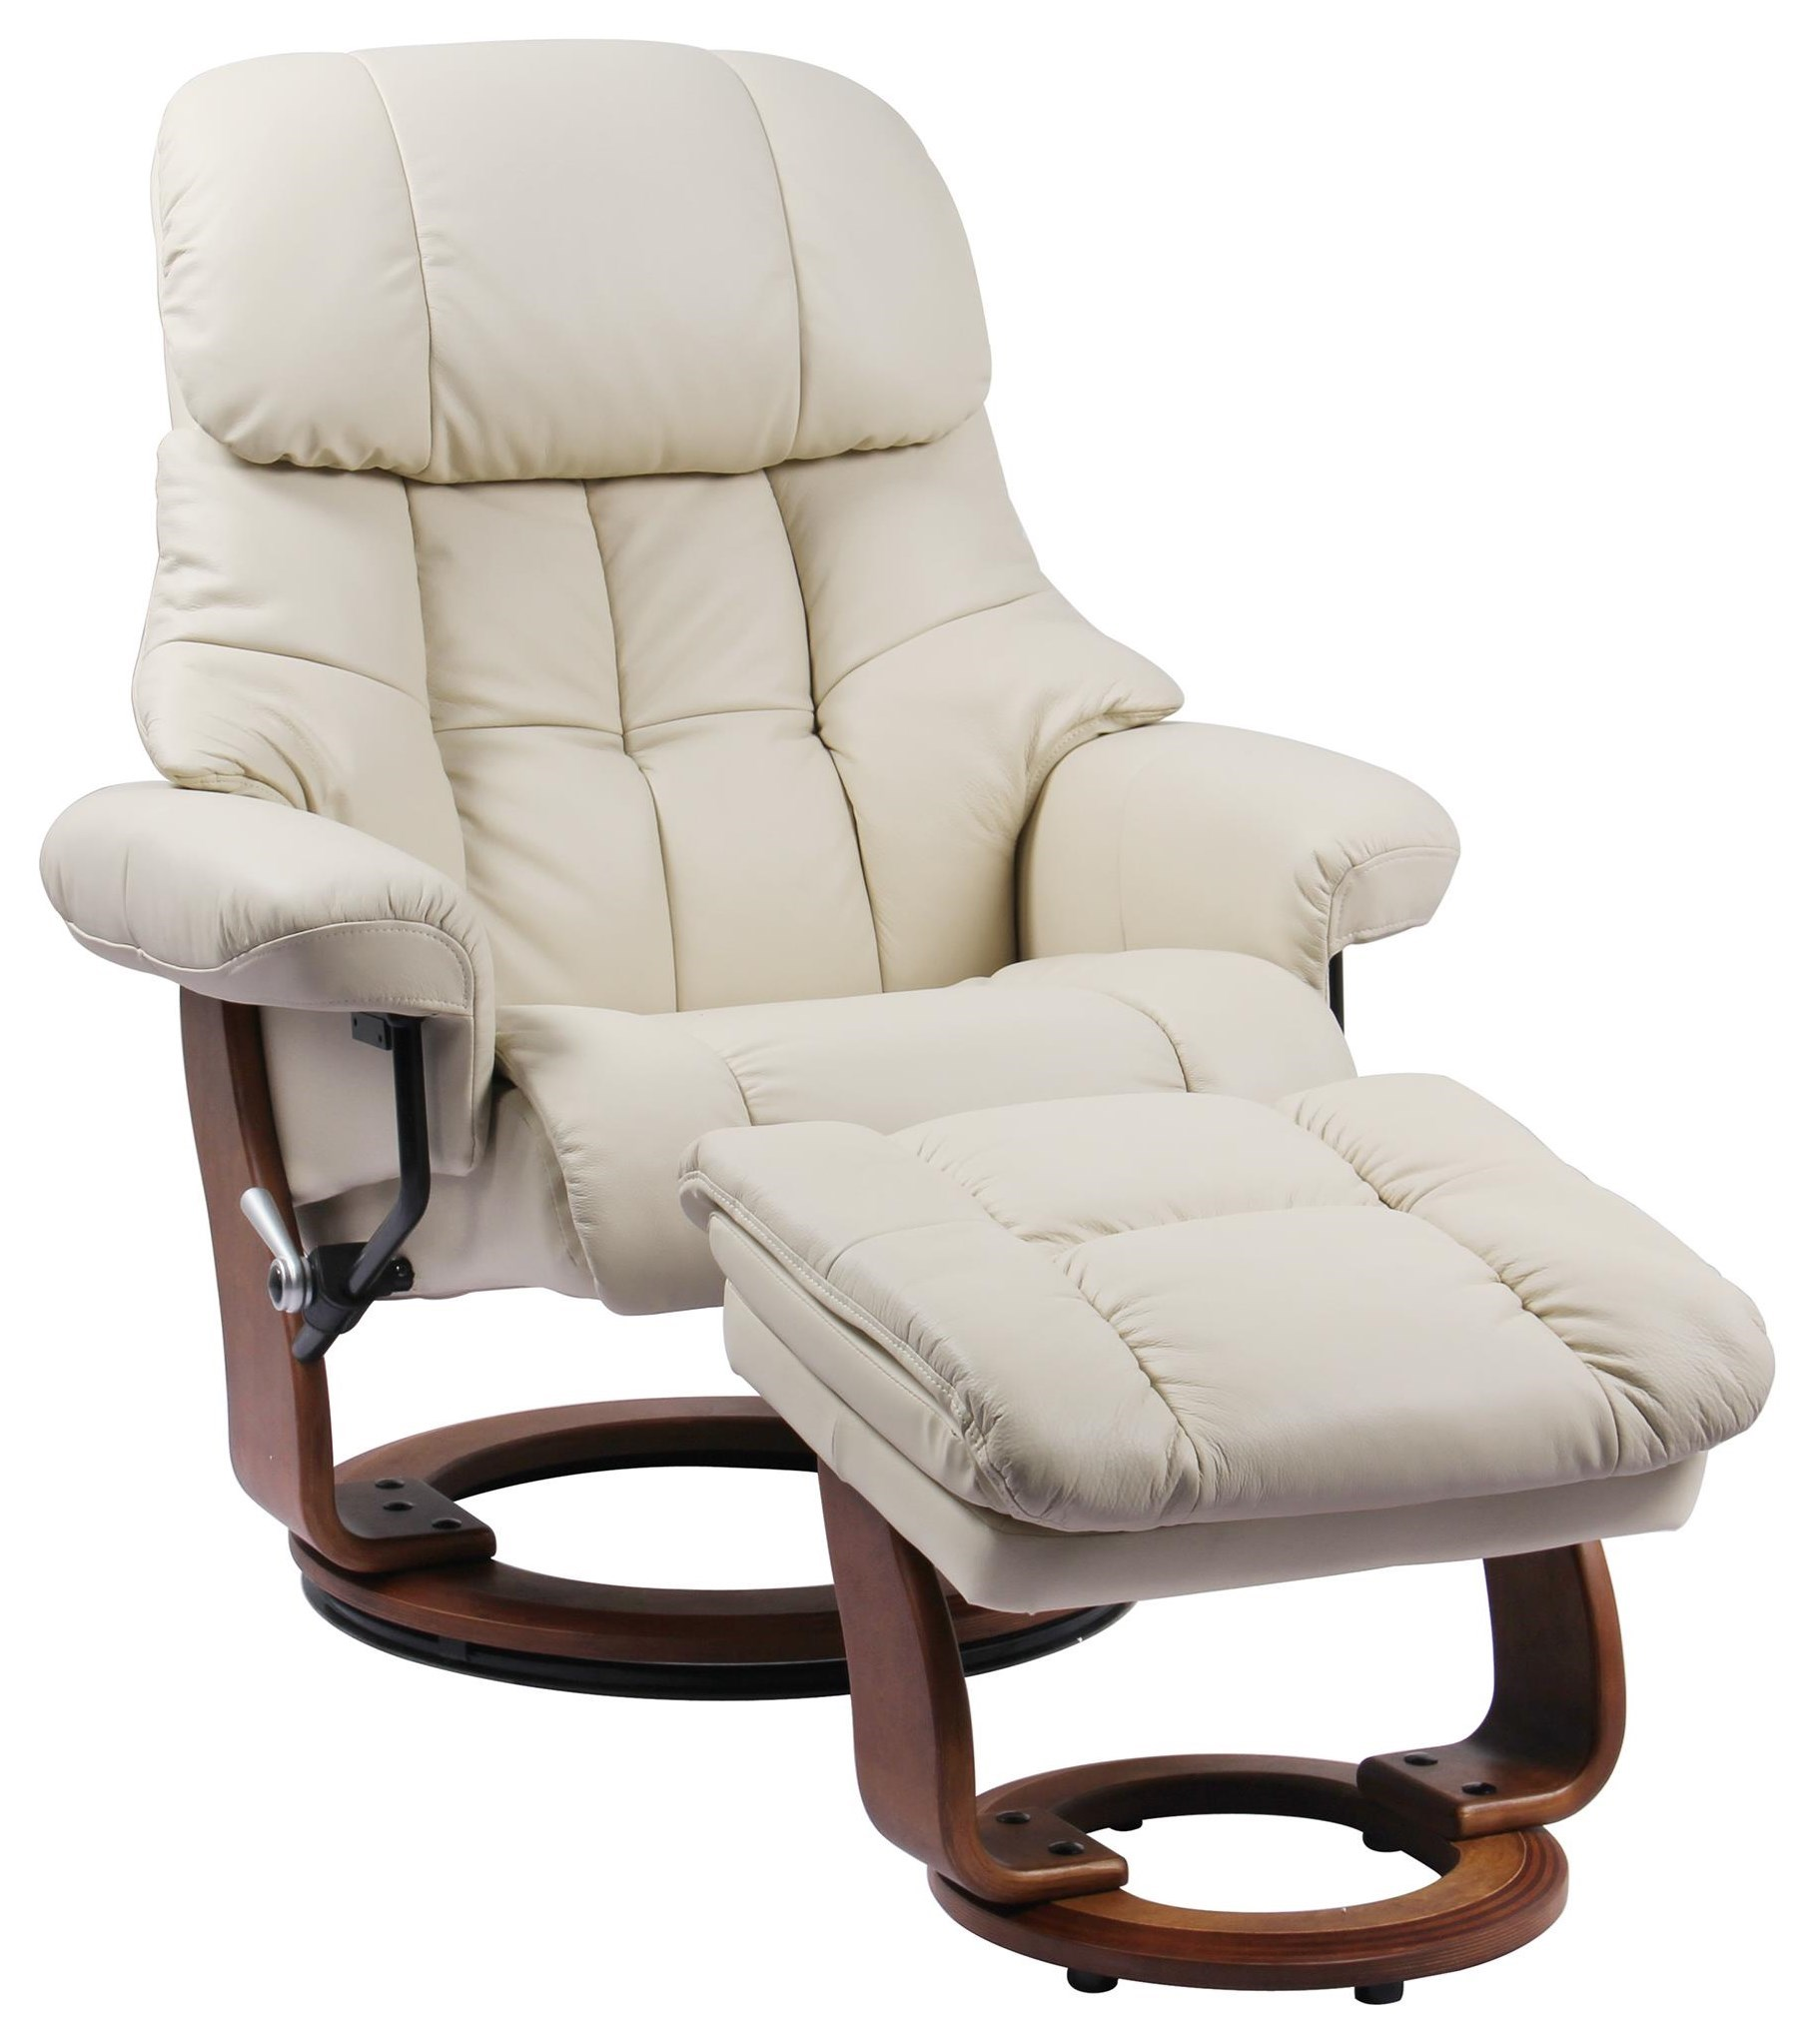 Sressless 7438 Nicholas Ivory Stressless Chair Otto By Benchmaster At Furniture Fair North Carolina